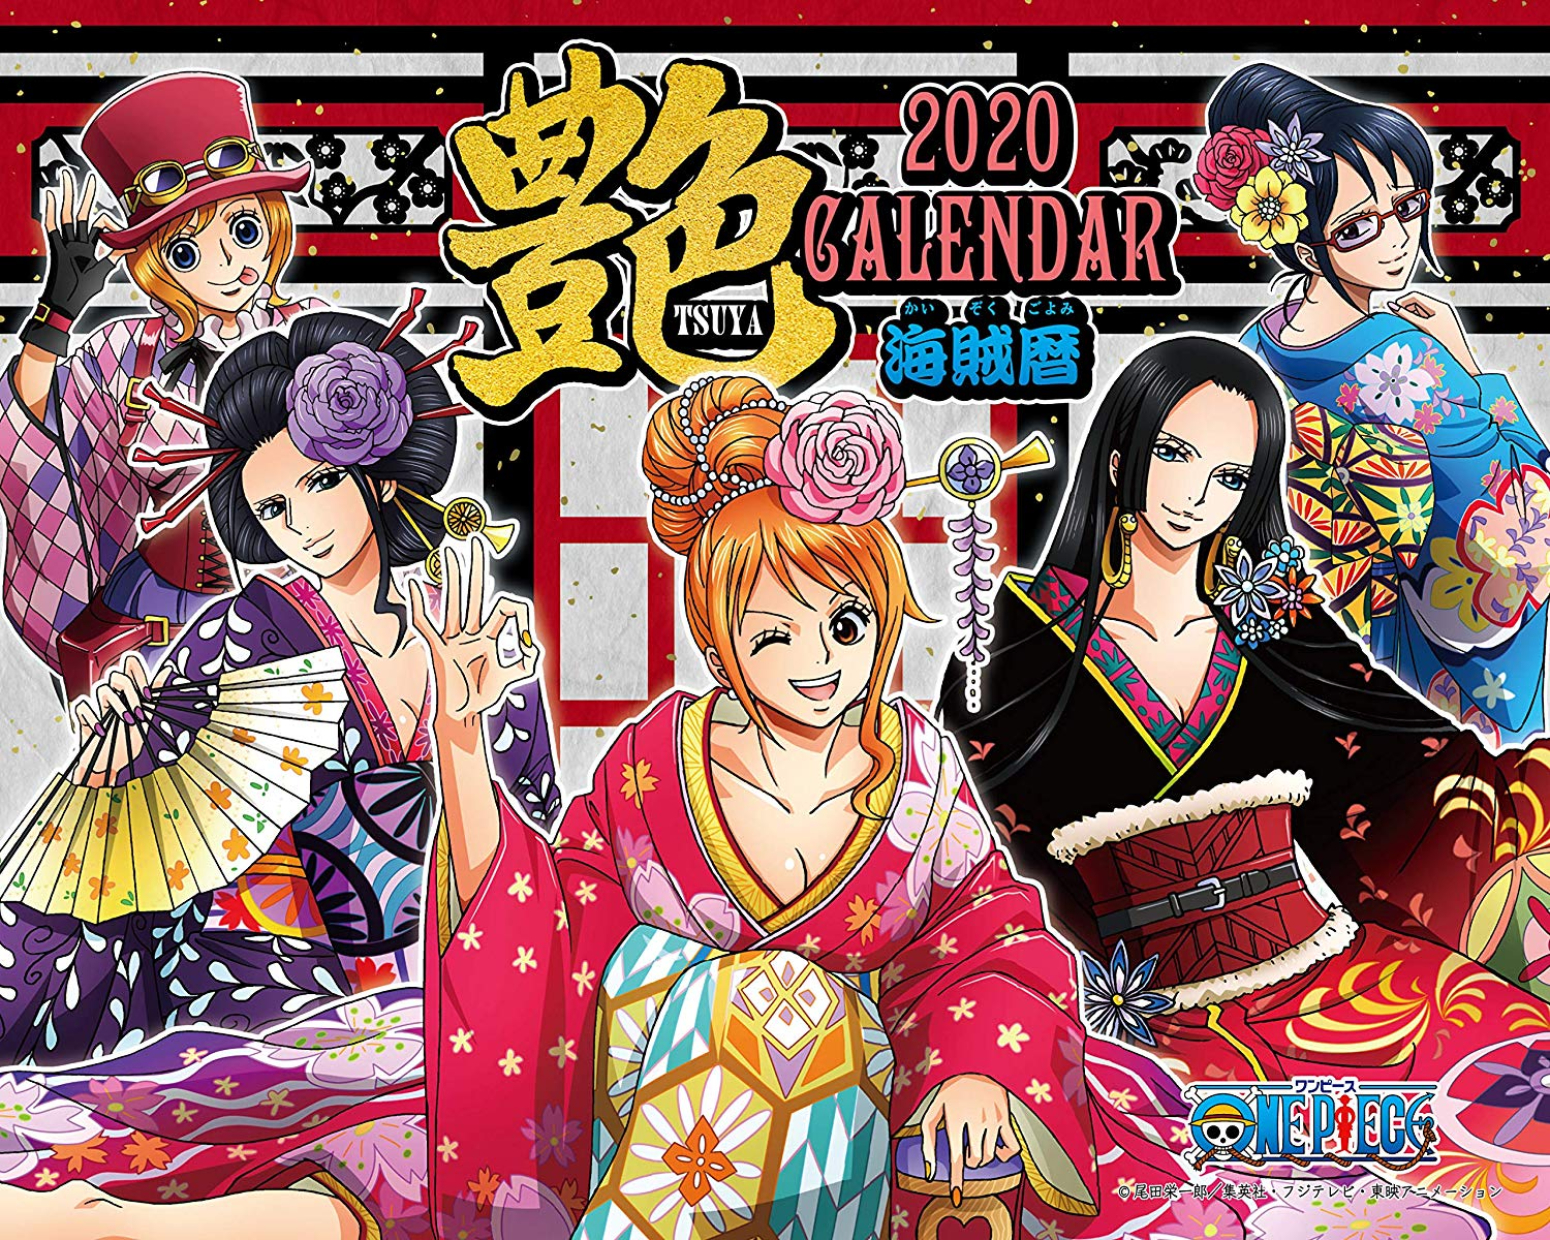 00 One Piece Tsuya Pirate Age Girls 2020 Calendar Front Cover